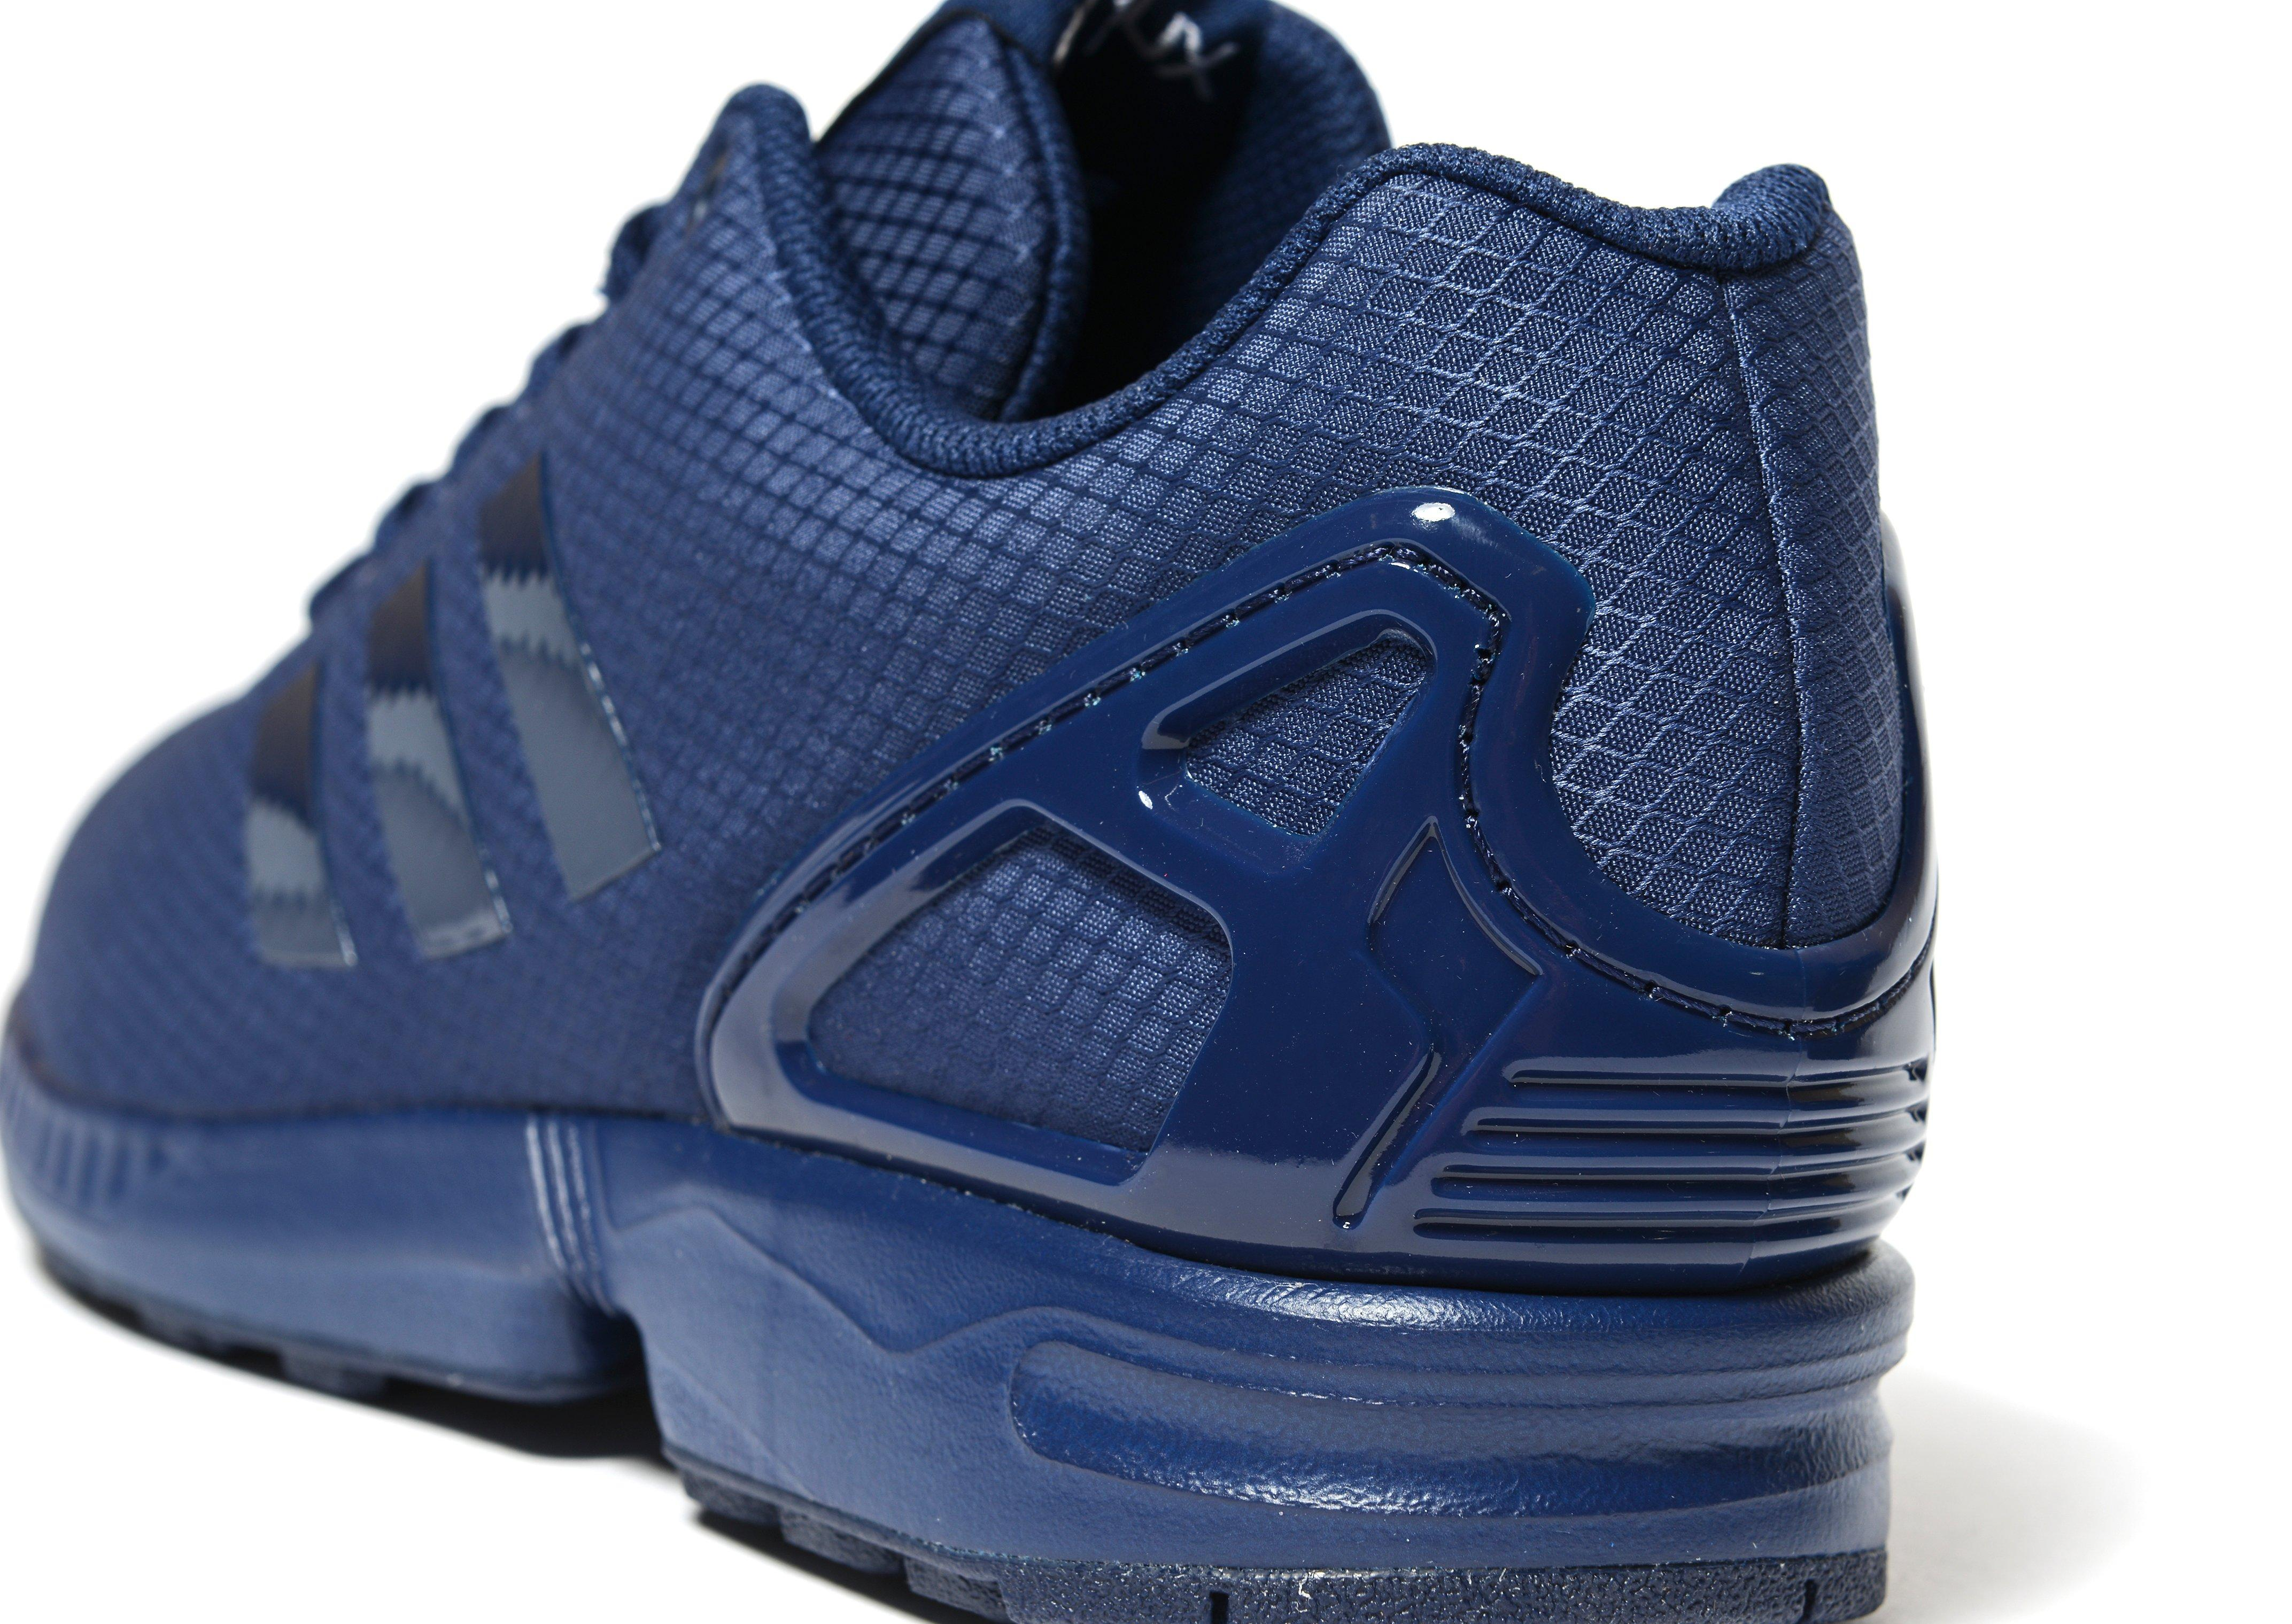 info for 701c4 f8bae where can i buy adidas originals zx flux all blue 96b21 8b9b5